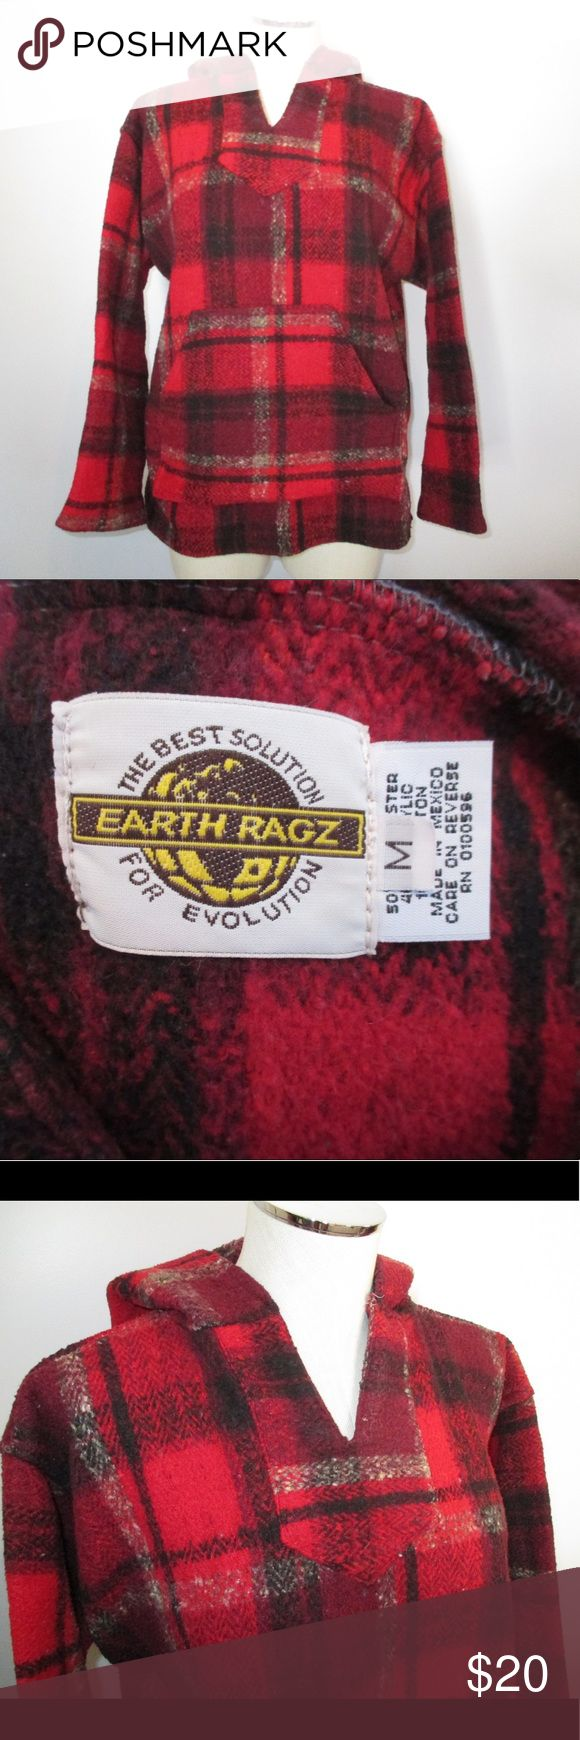 🆕 Earth Ragz Baja hoodie 🆕 listing not nwt.   👗Original owner - noticeable wear will be displayed in (but not limited to) their own pictures.  🛒Reasonable offers will be considered  💔Offers less than $7 or 50% will be declined  🛍Take advantage of bundle offers 🚫No trades/transactions outside PM🚫  🐶 Pet friendly/smoke free home 🚭 🎉Happy poshing! 🎉 earth ragz Tops Sweatshirts & Hoodies